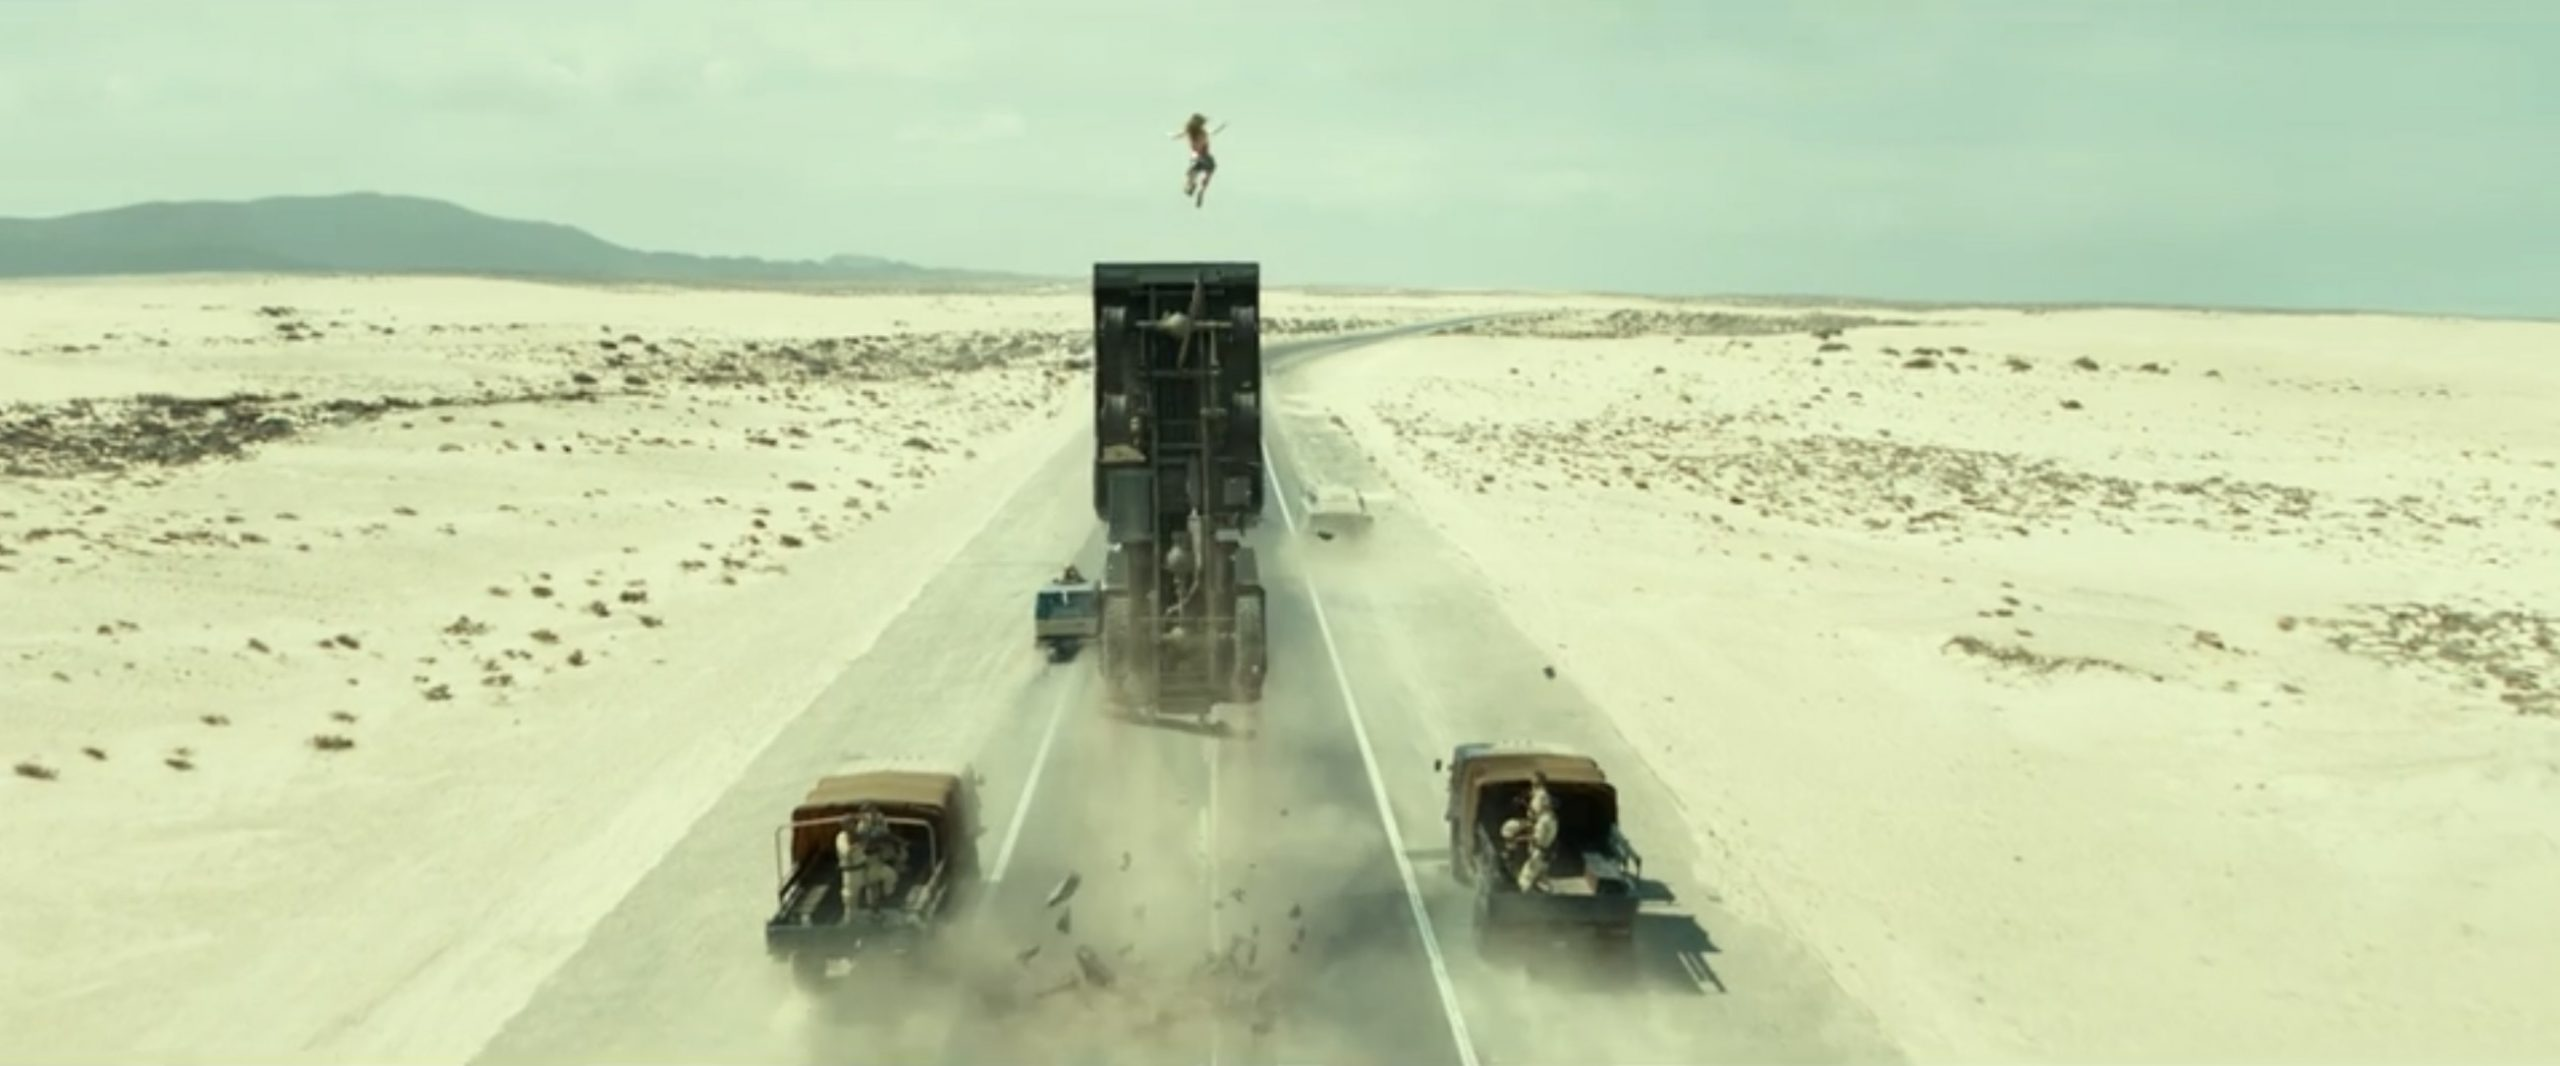 wonder woman truck launch chase scene action